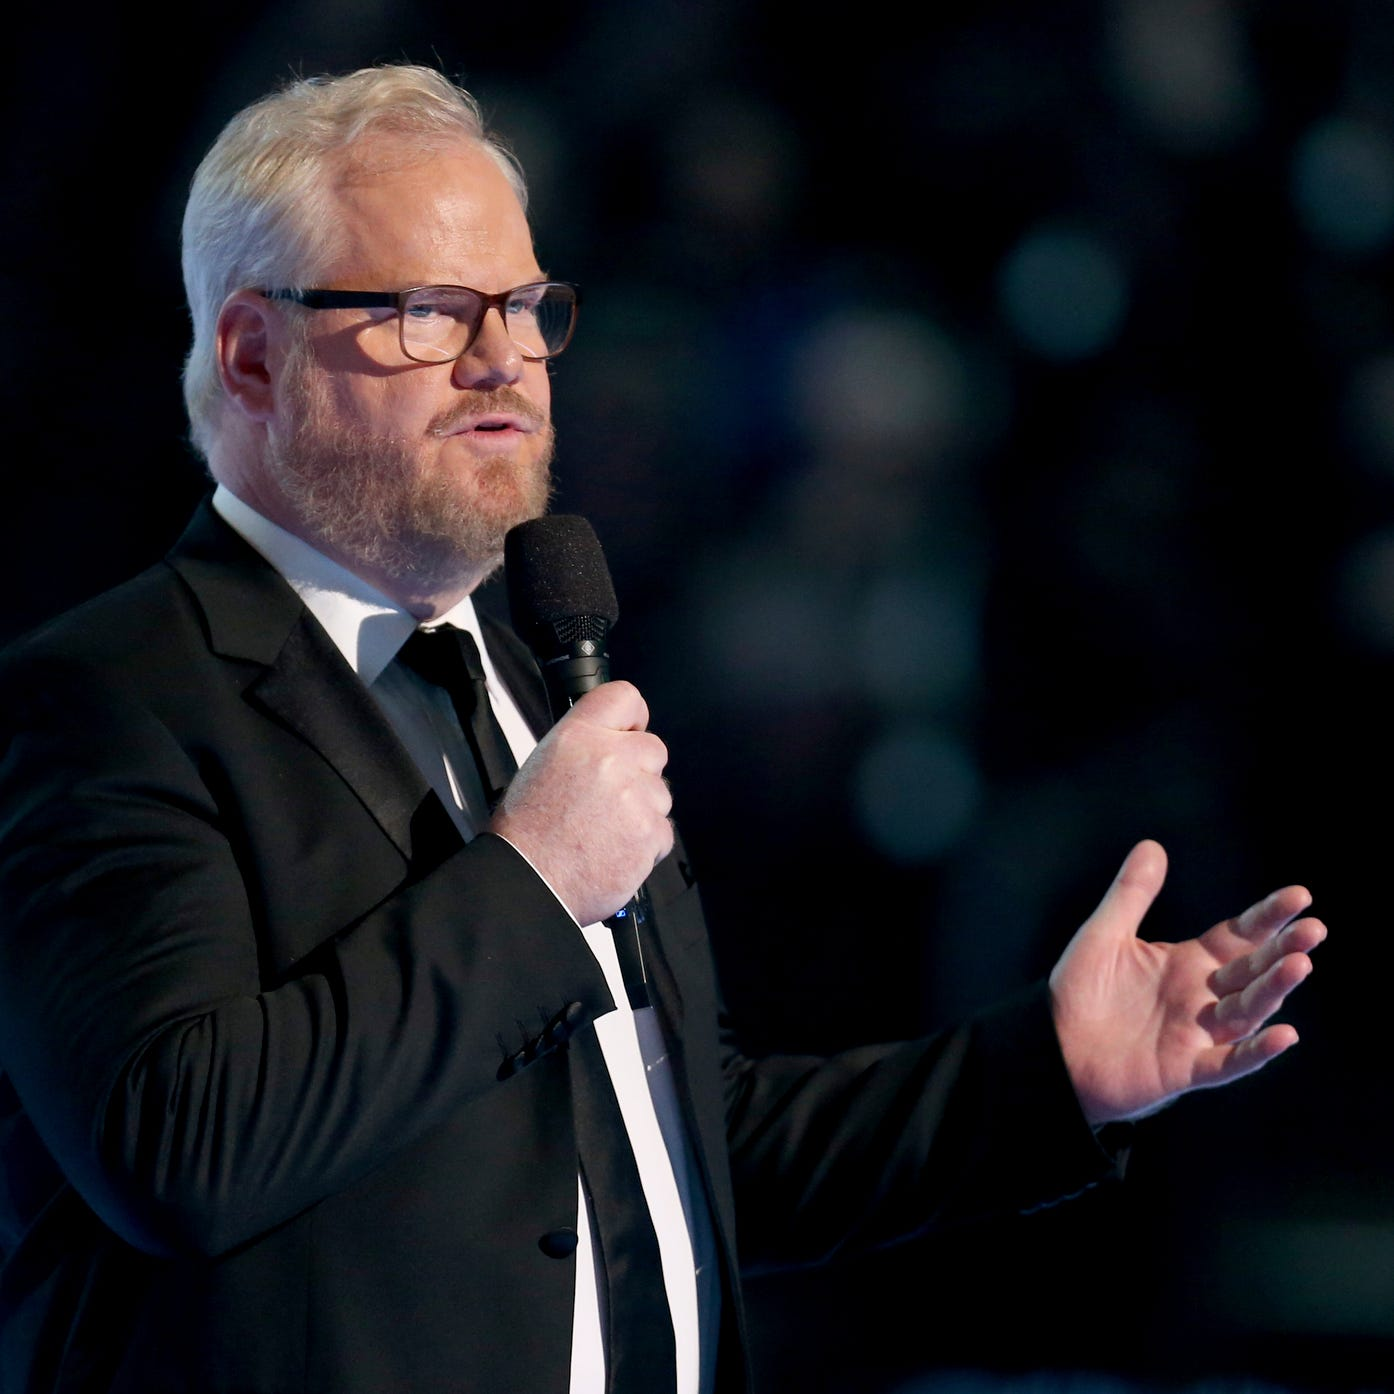 Jim Gaffigan to bring comedy to Civic Center: How to get tickets